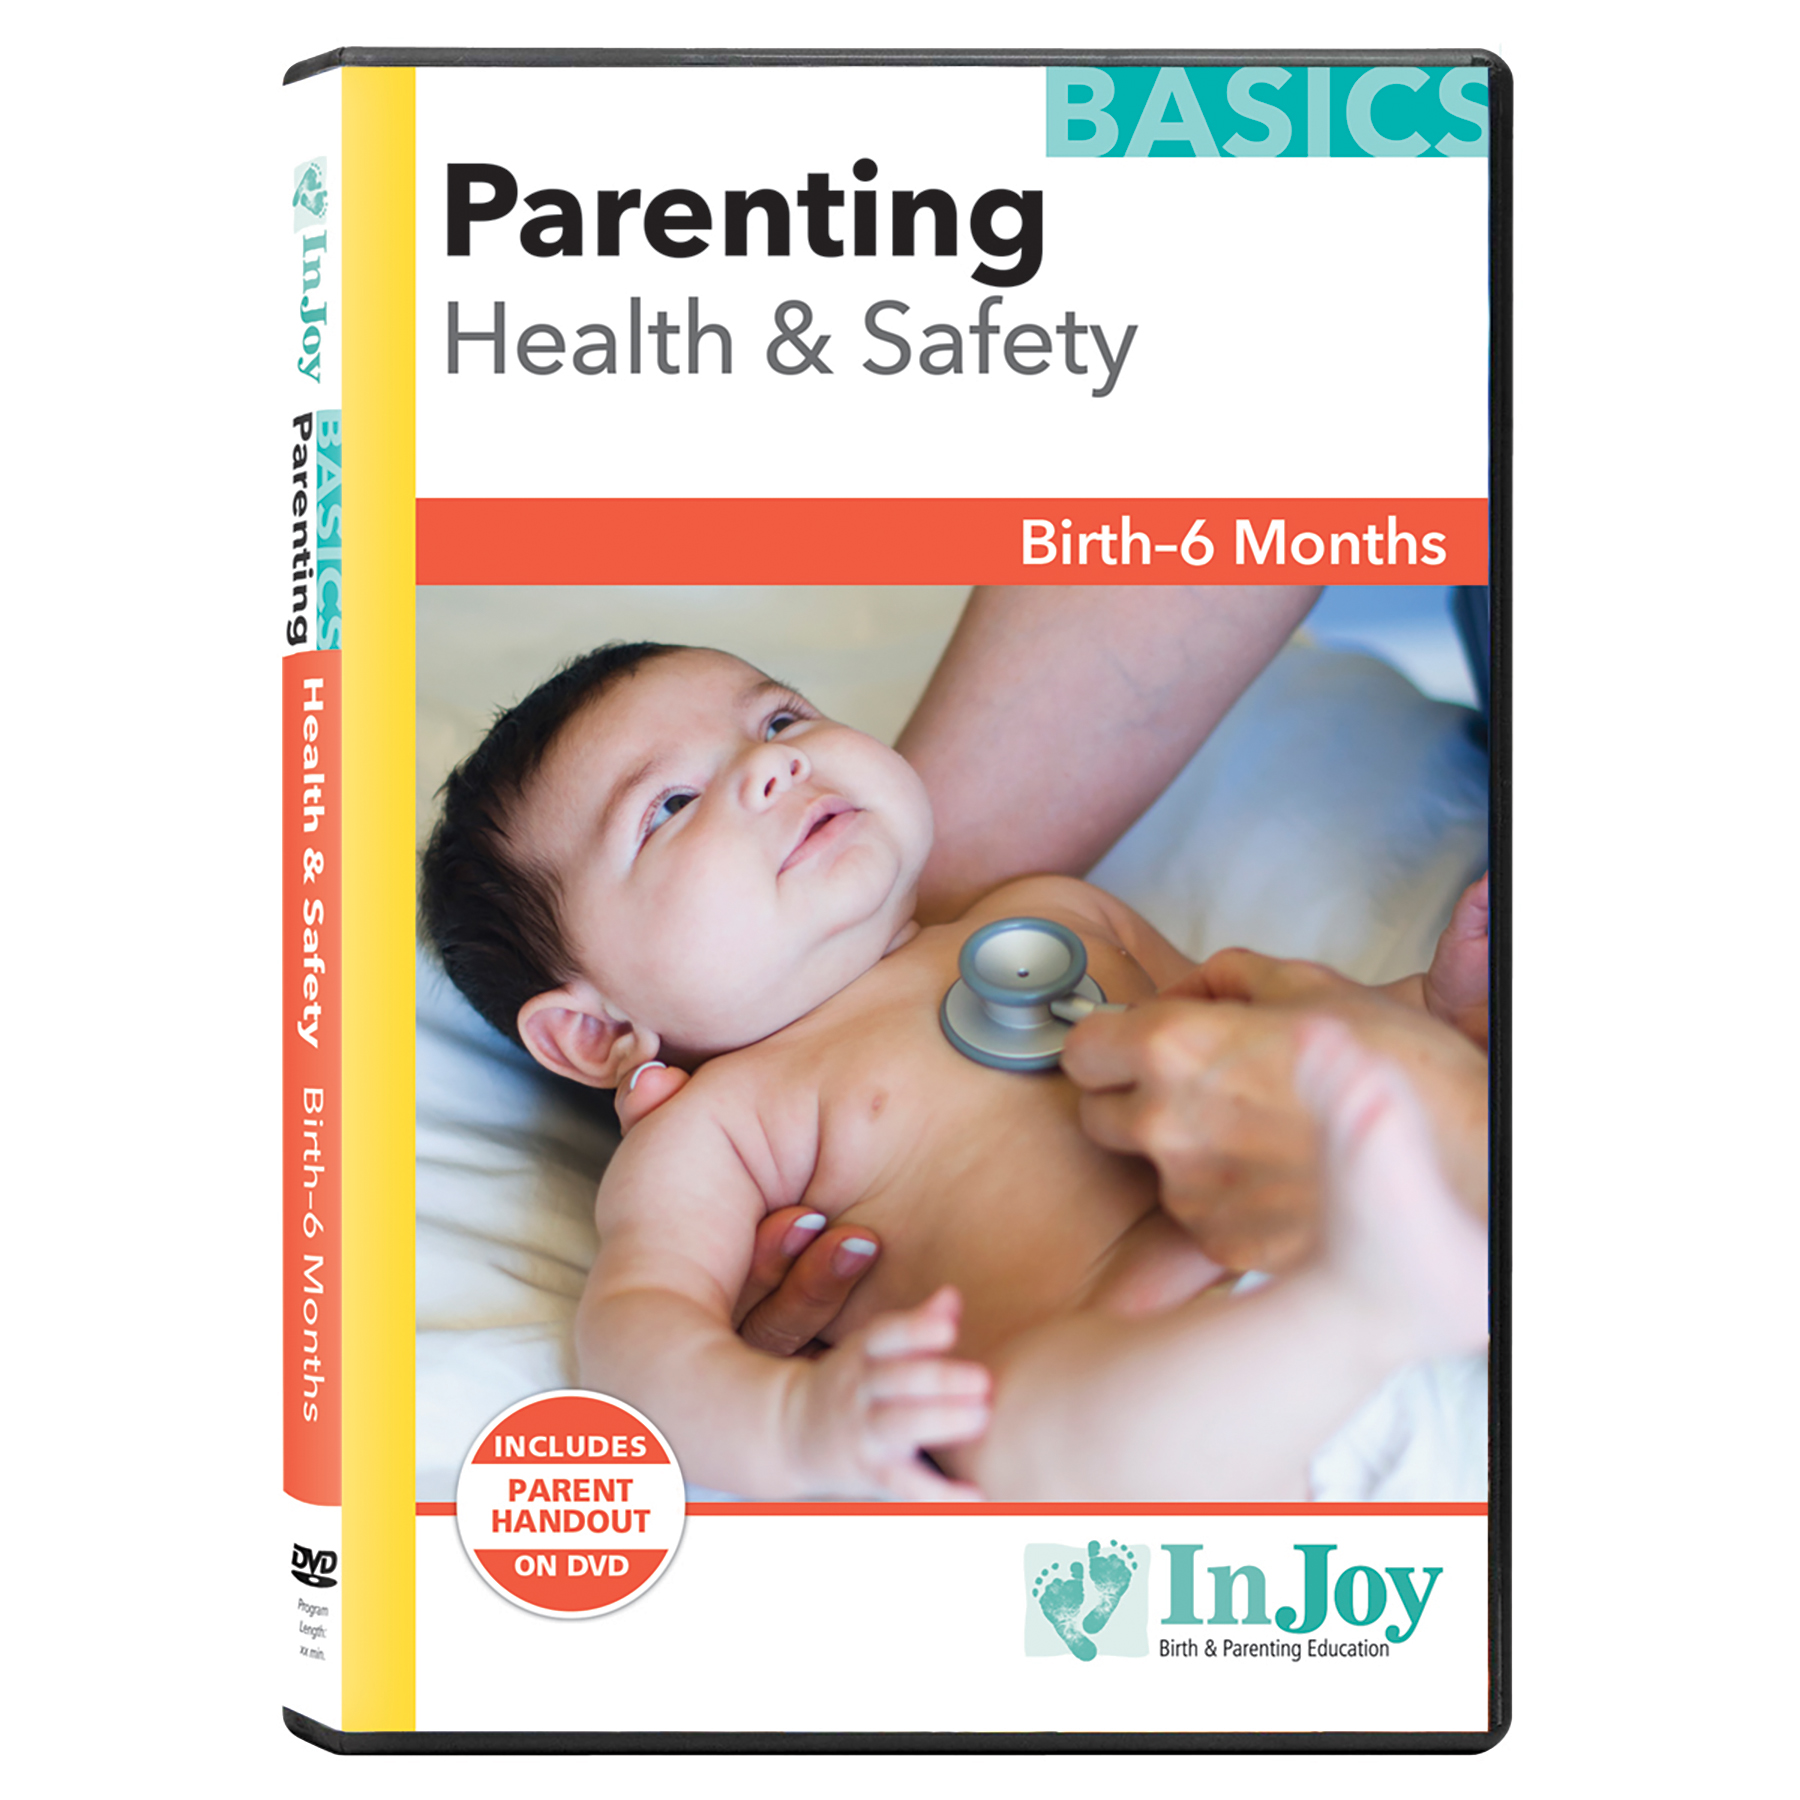 Parenting Health & Safety Birth to 6 Months DVD cover, stethoscope on baby's chest, Childbirth Graphics, 40019